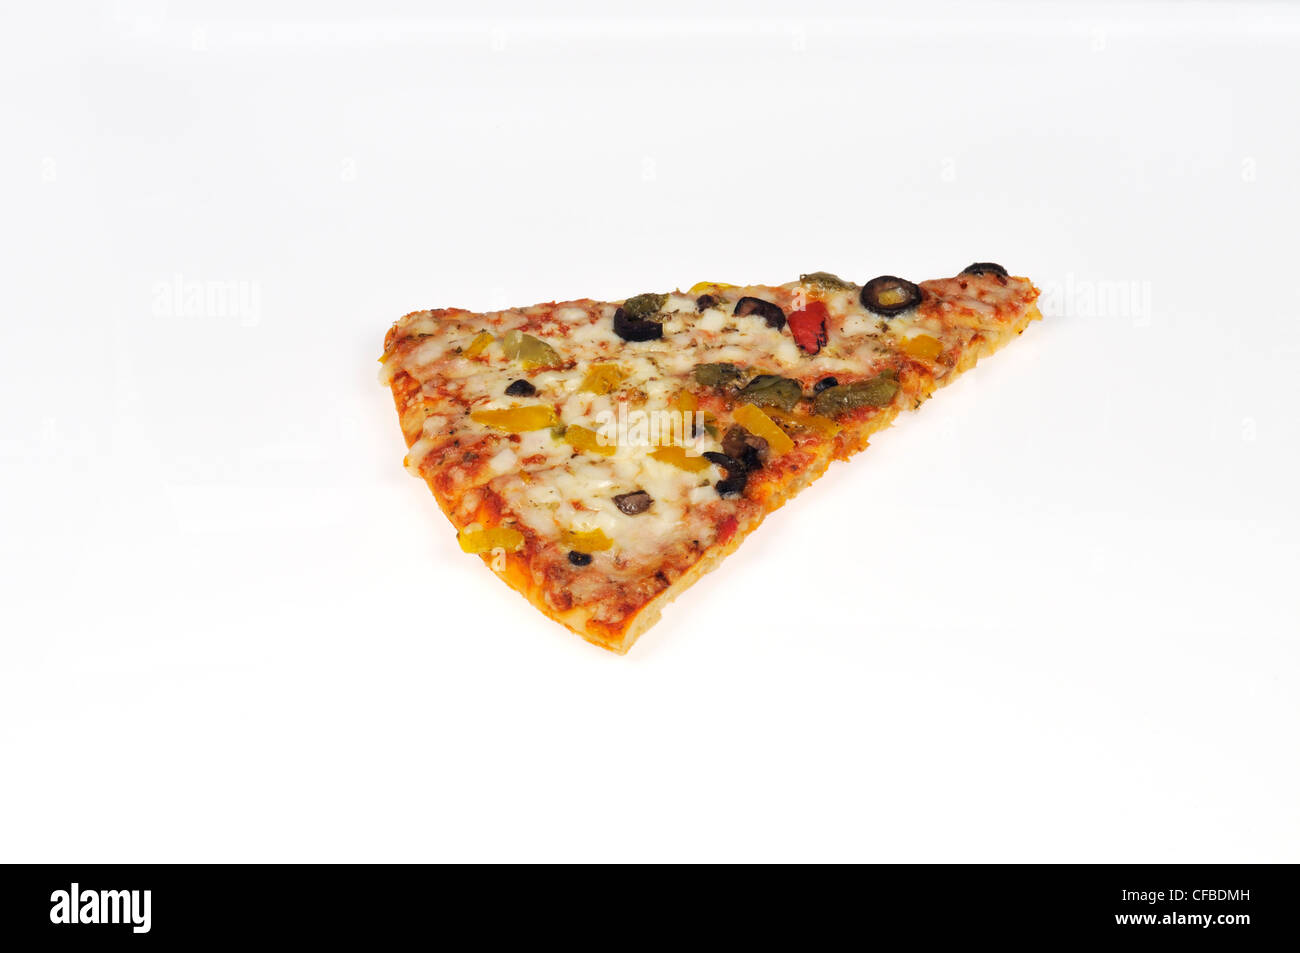 Cheese Pizza Cut Out Stock Photos & Cheese Pizza Cut Out Stock ...